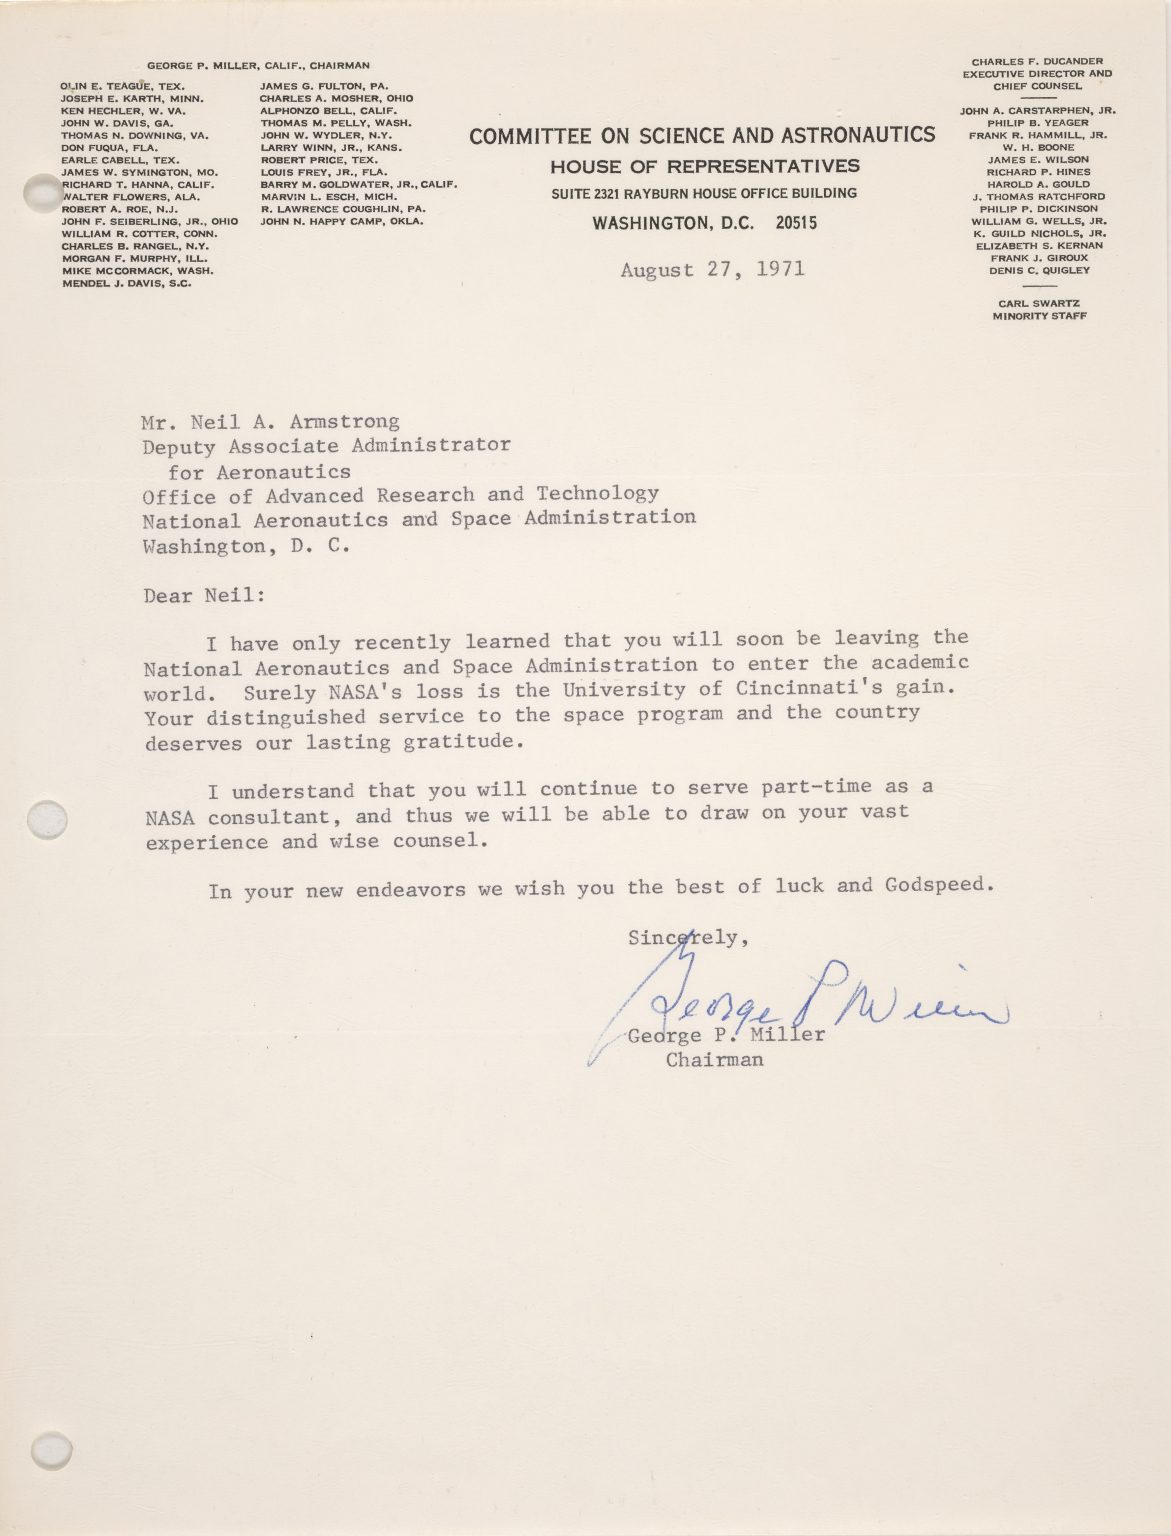 neil armstrong letter